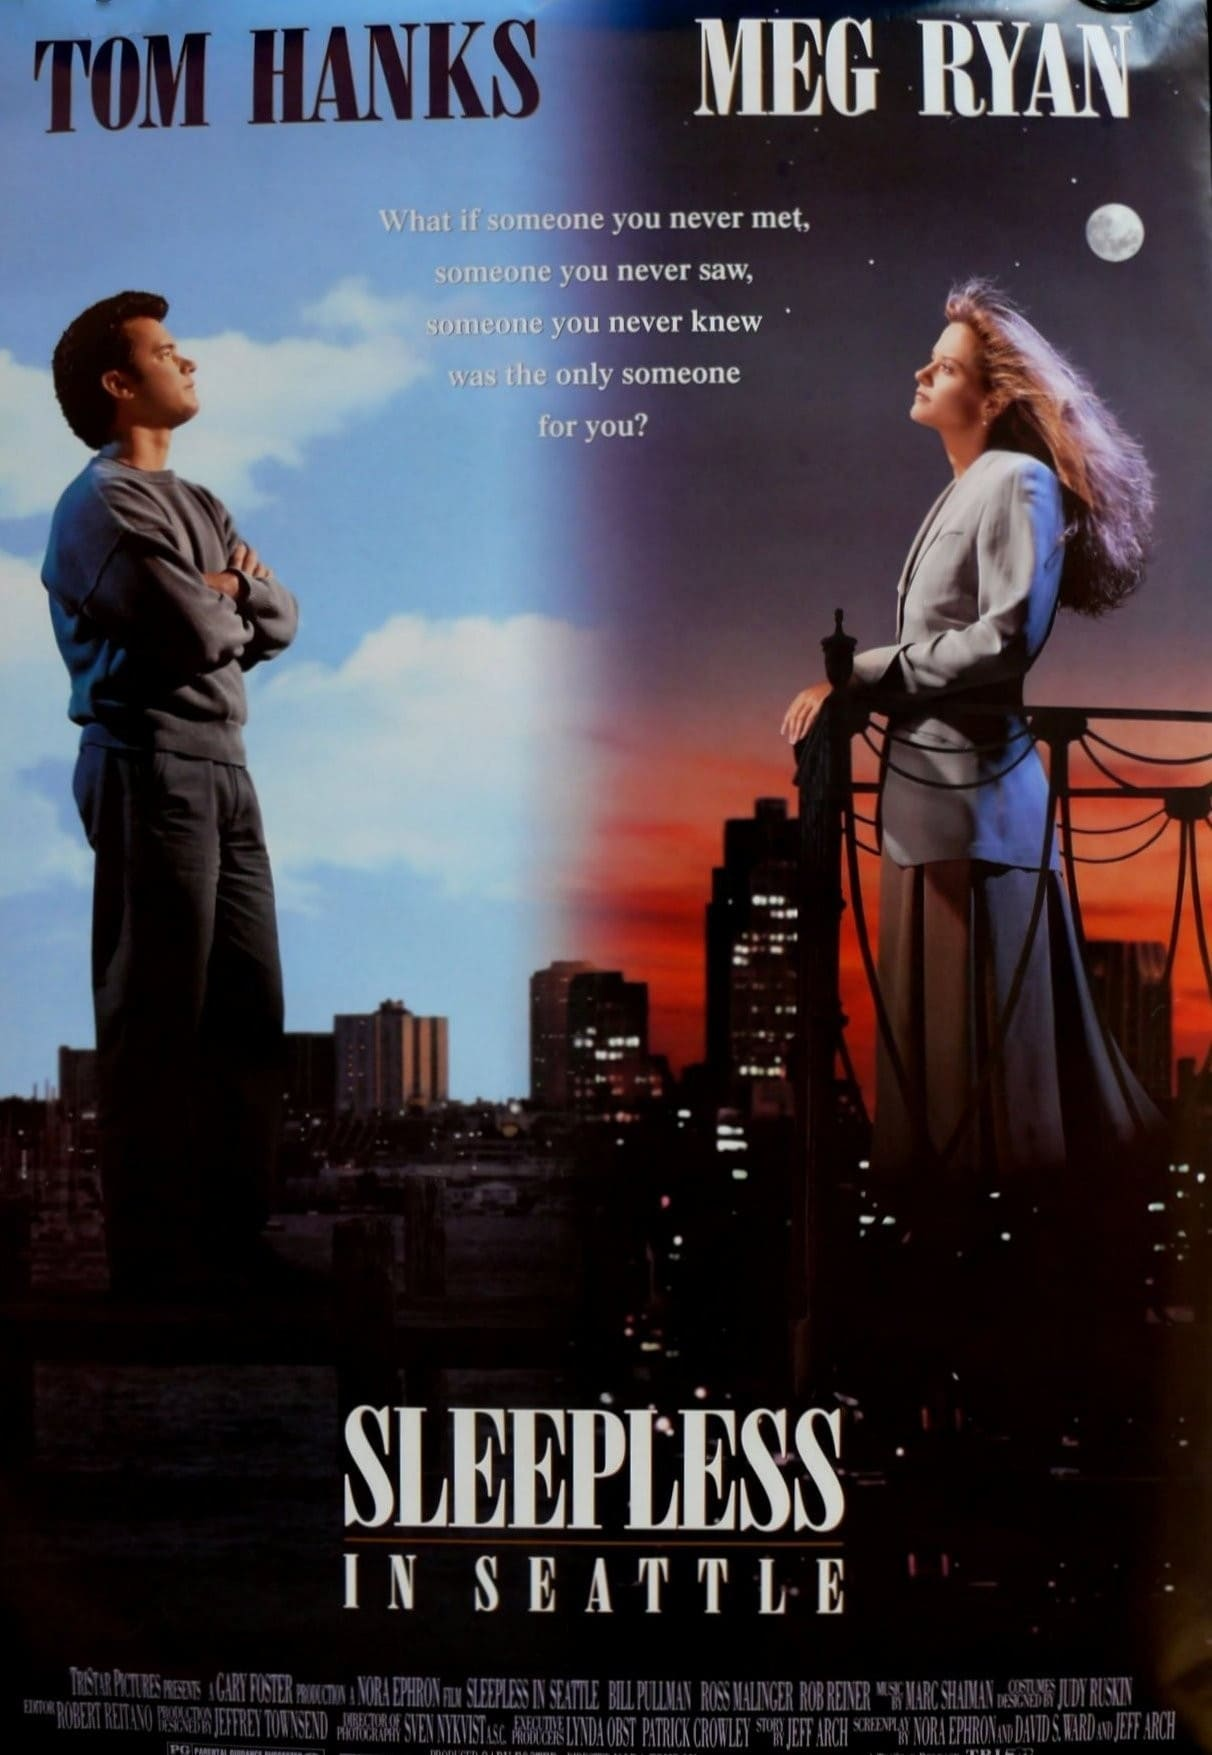 a movie analysis of sleepless in seattle The film will probably call up memories of when harry met sally, although sleepless in seattle, compared with that denatured version of a woody allen comedy, looks like a stunning original.